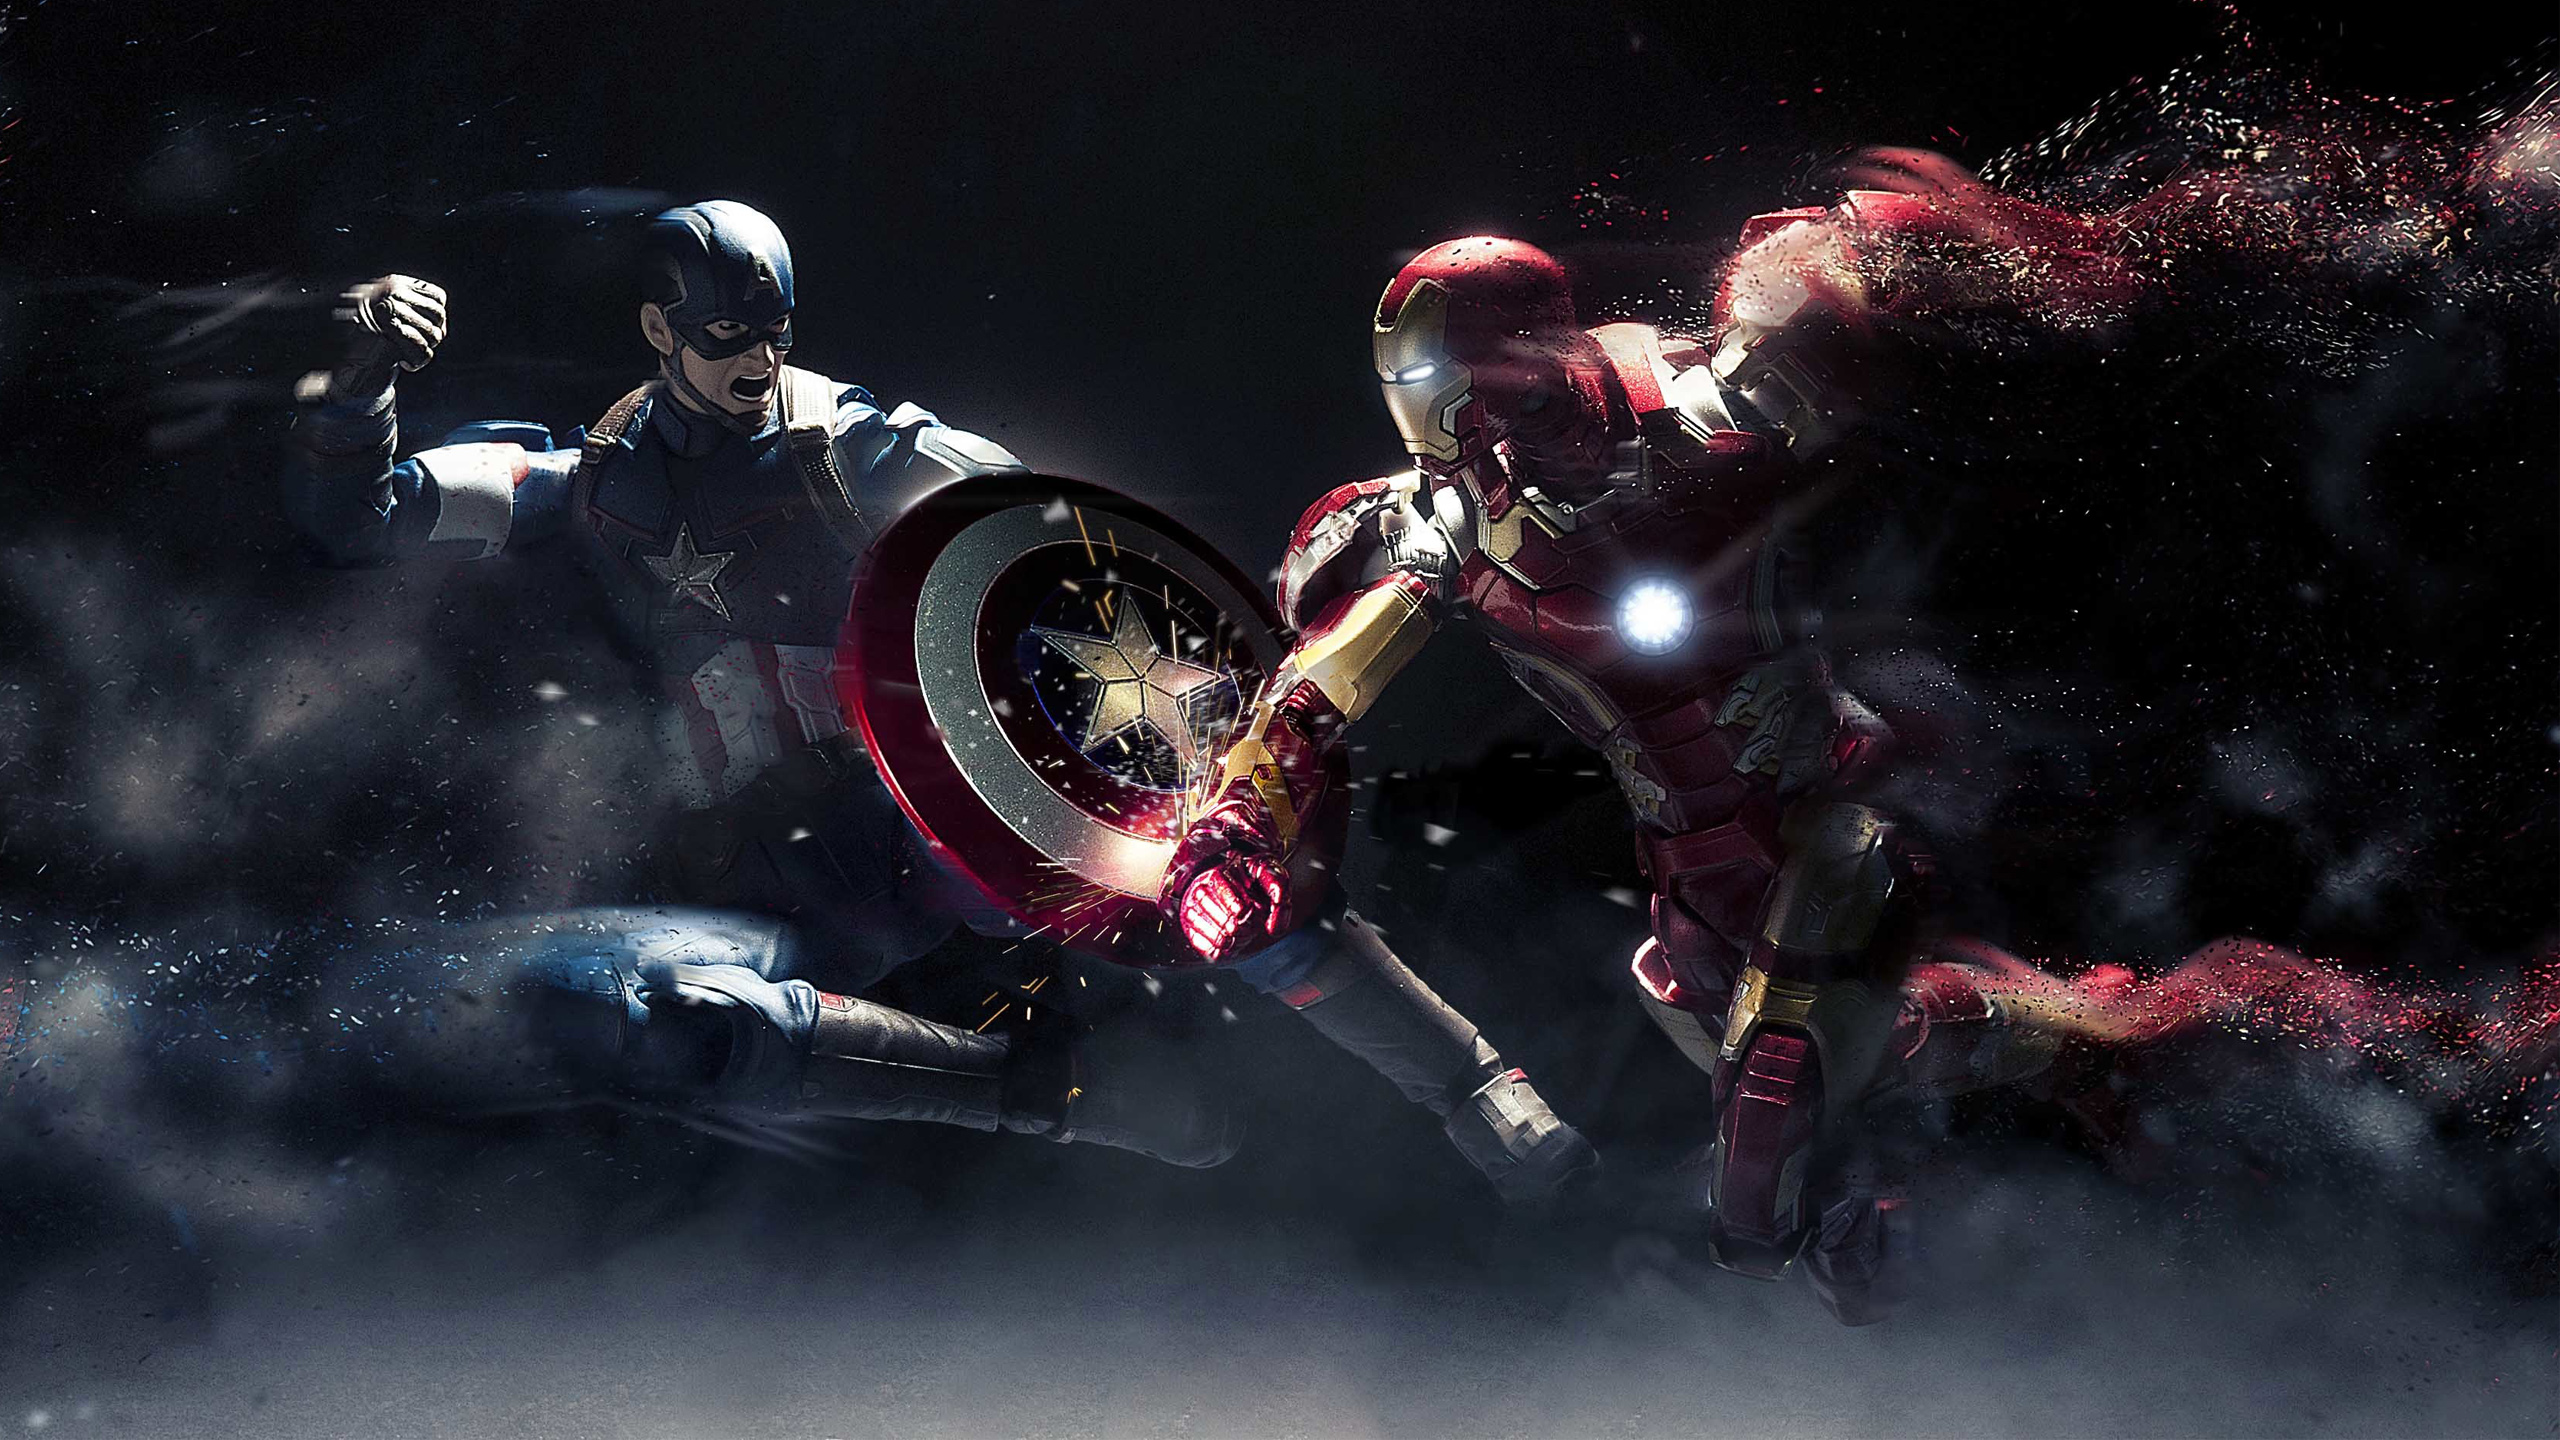 Captain America vs Iron Man HD Wallpaper Background Image 2560x1440